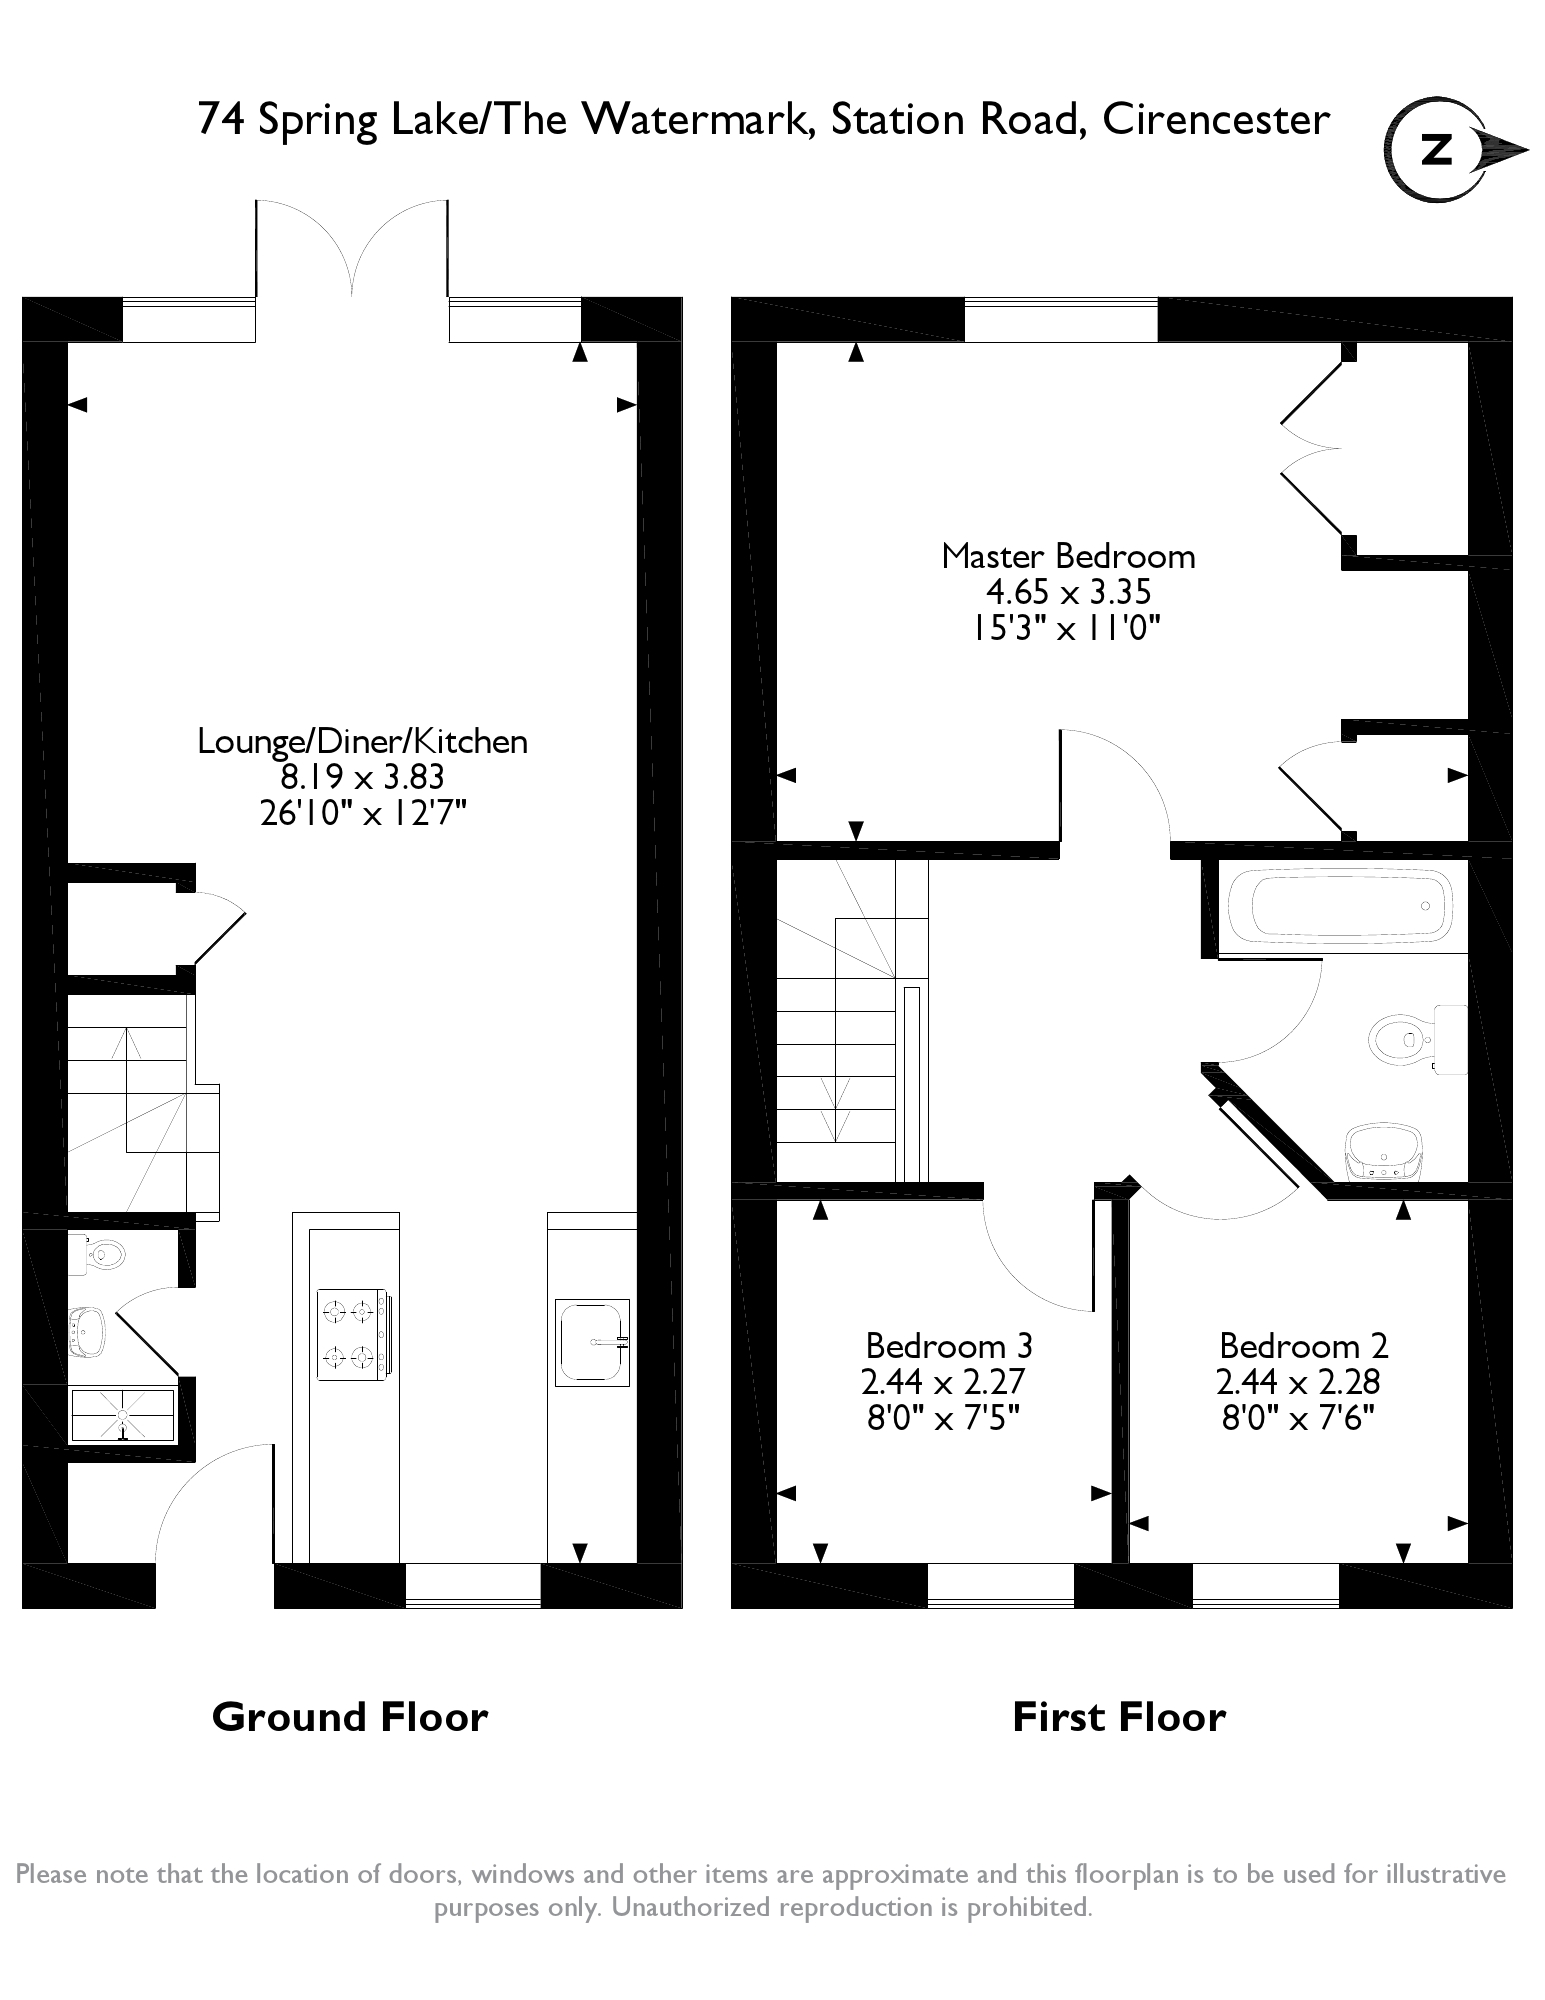 The Watermark, Station Road, Cirencester, GL7 floor plan